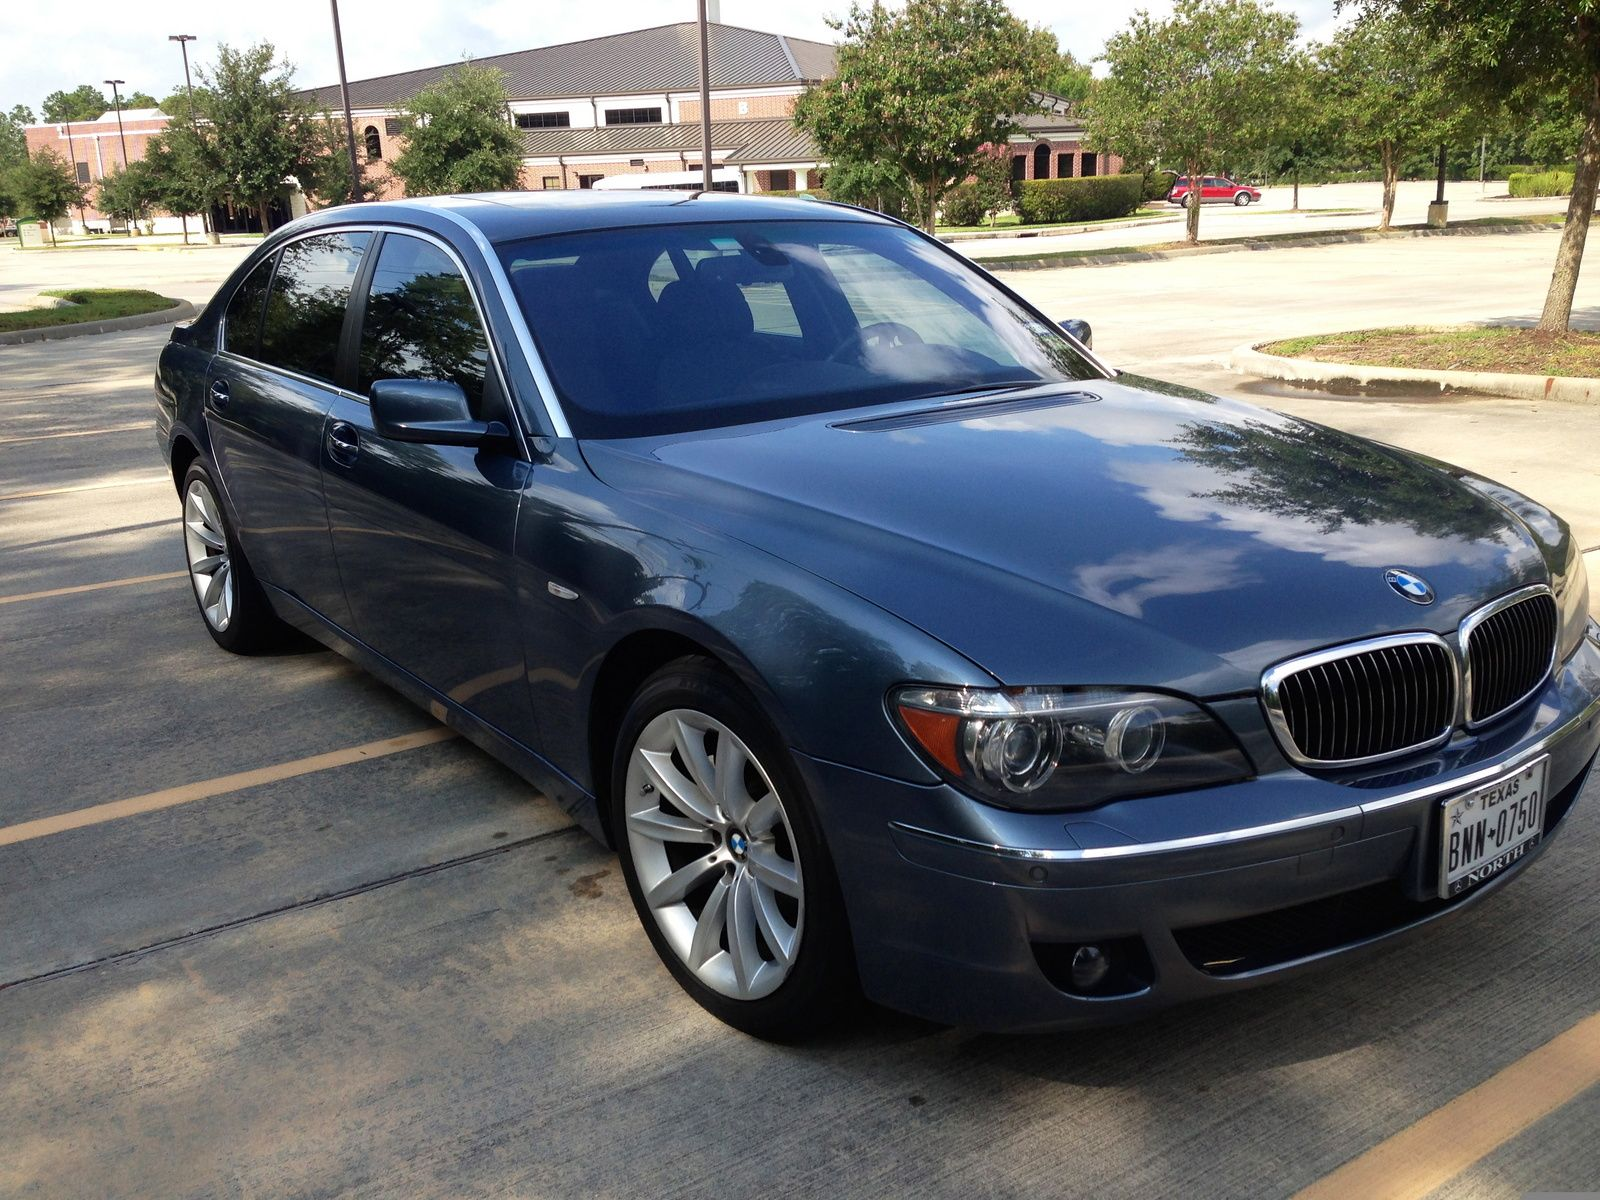 Picture Of 2007 Bmw 7 Series 750li Exterior With Images Bmw 7